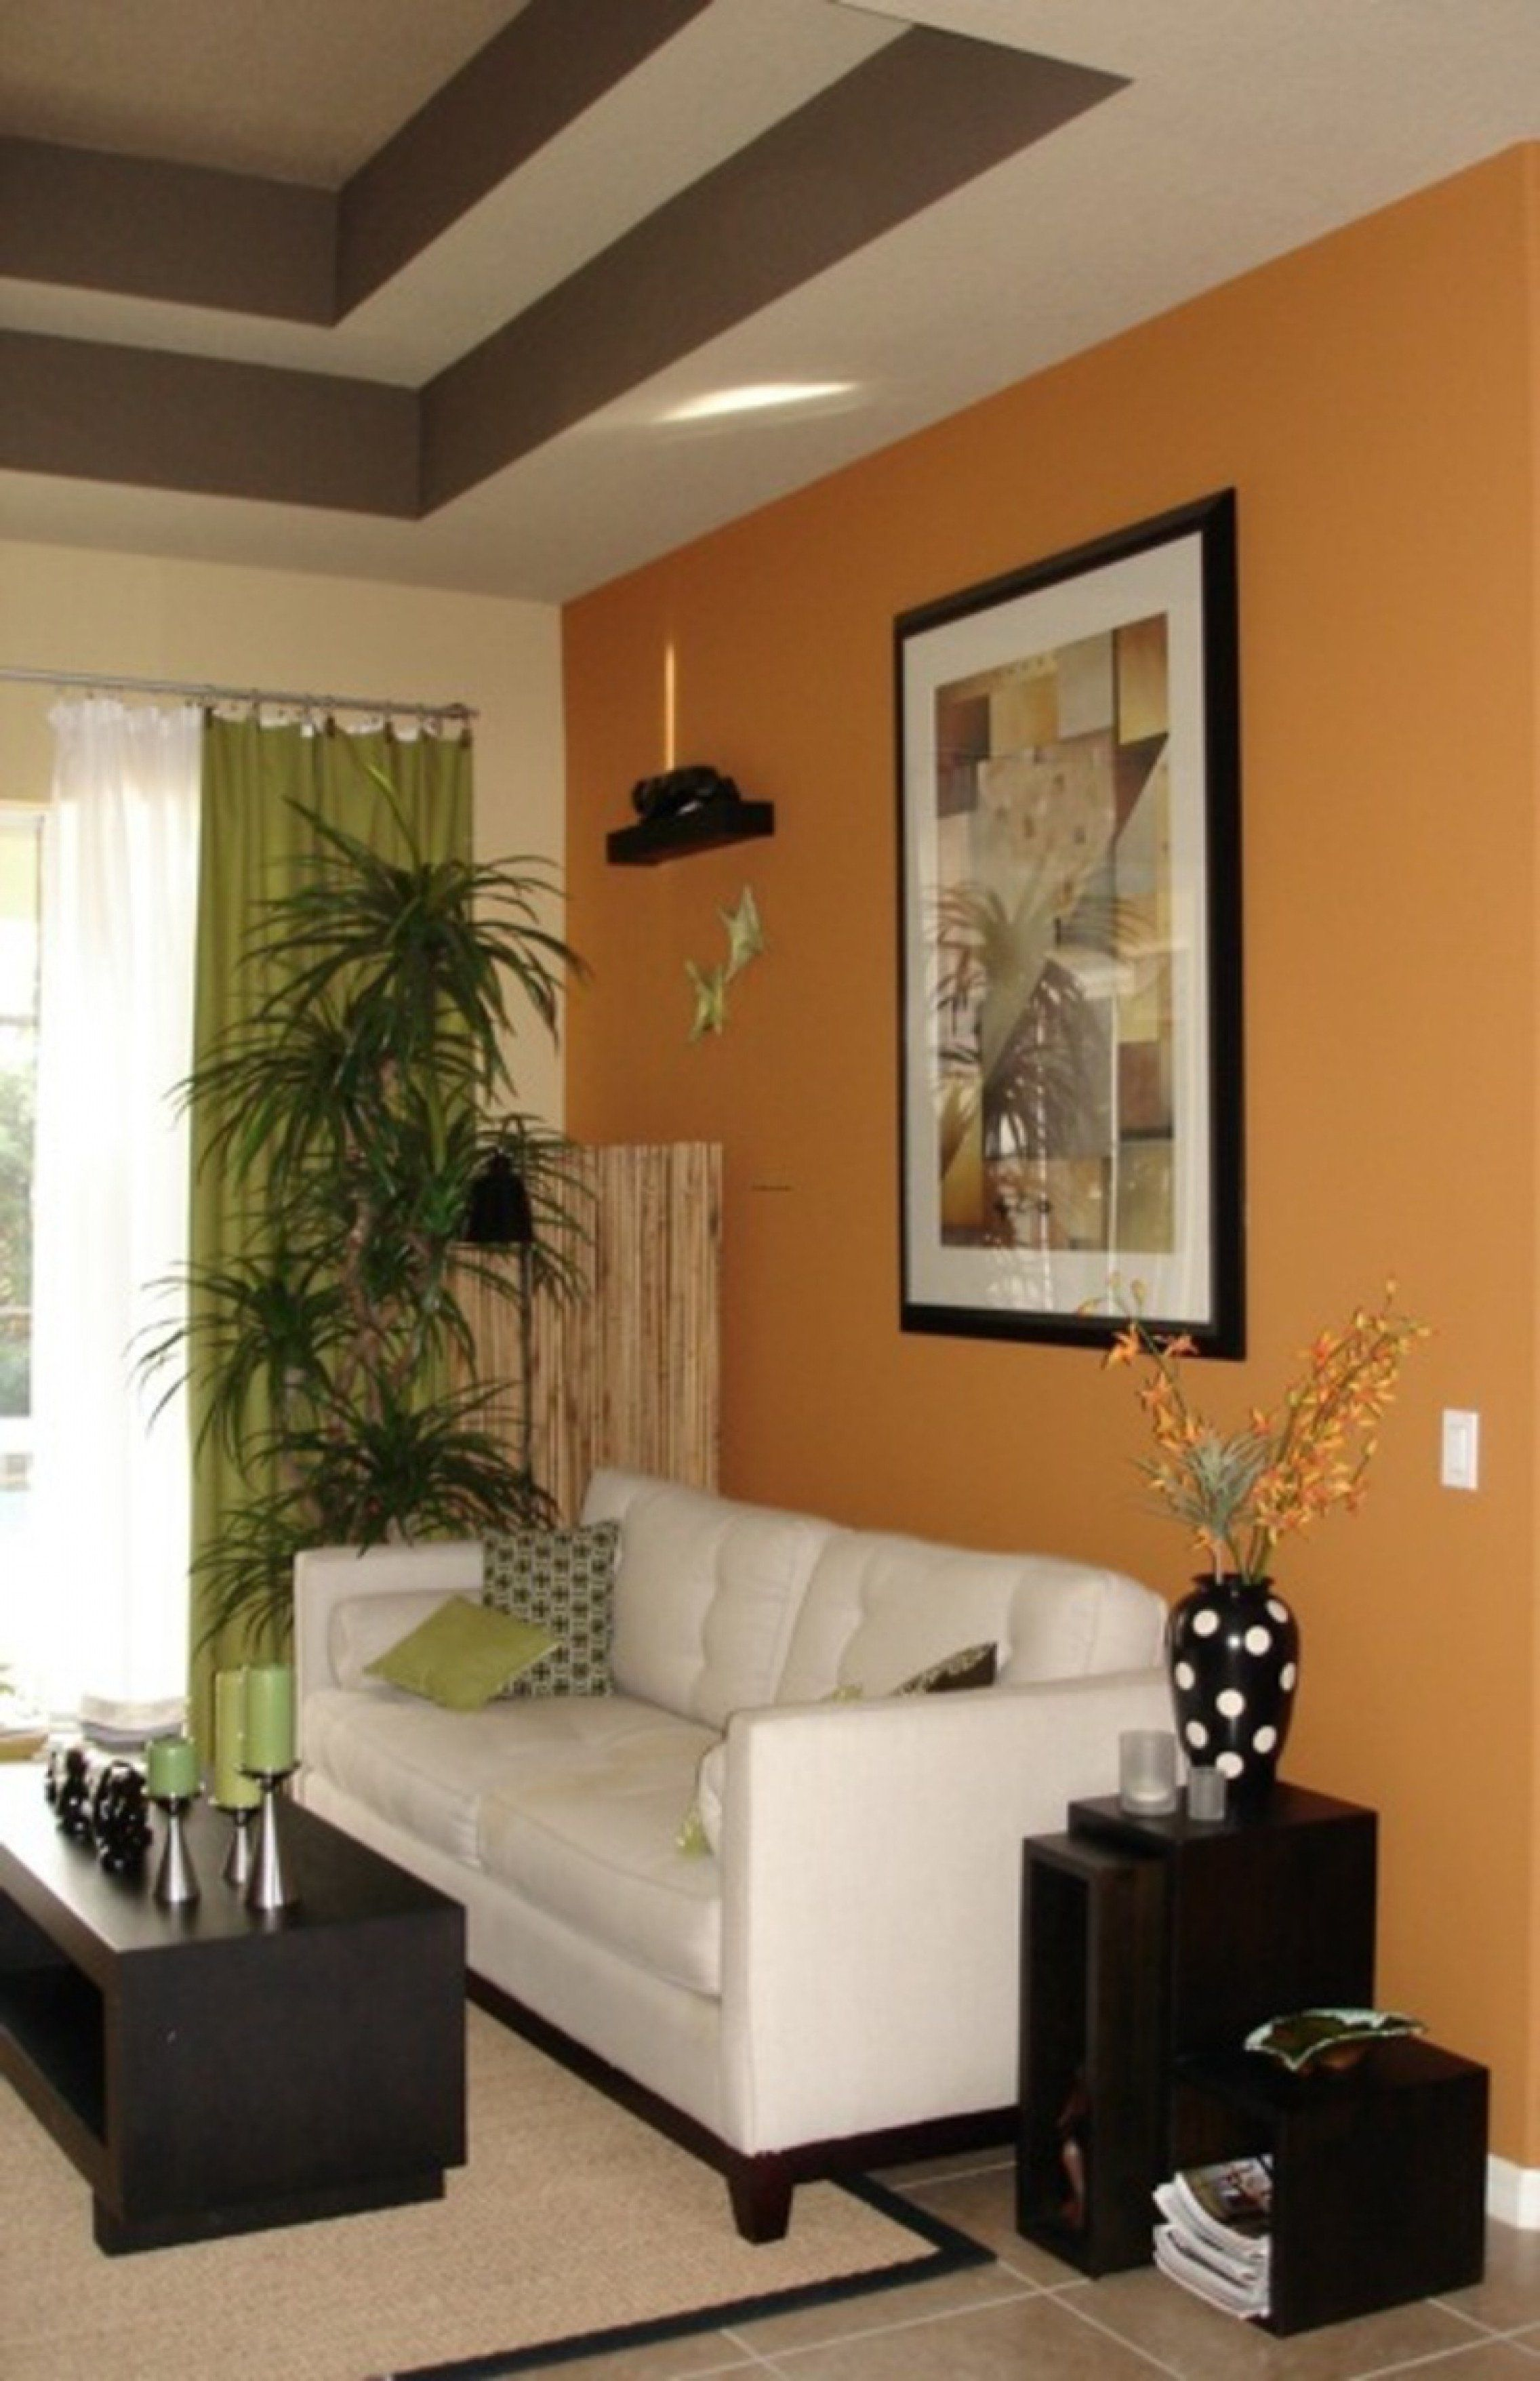 Small Living Room Paint Ideas Lovely Small Living Room Paint Color Ideas Nellia Designs Modern Living Room Paint Room Wall Colors Modern Living Room Colors #small #living #room #color #ideas